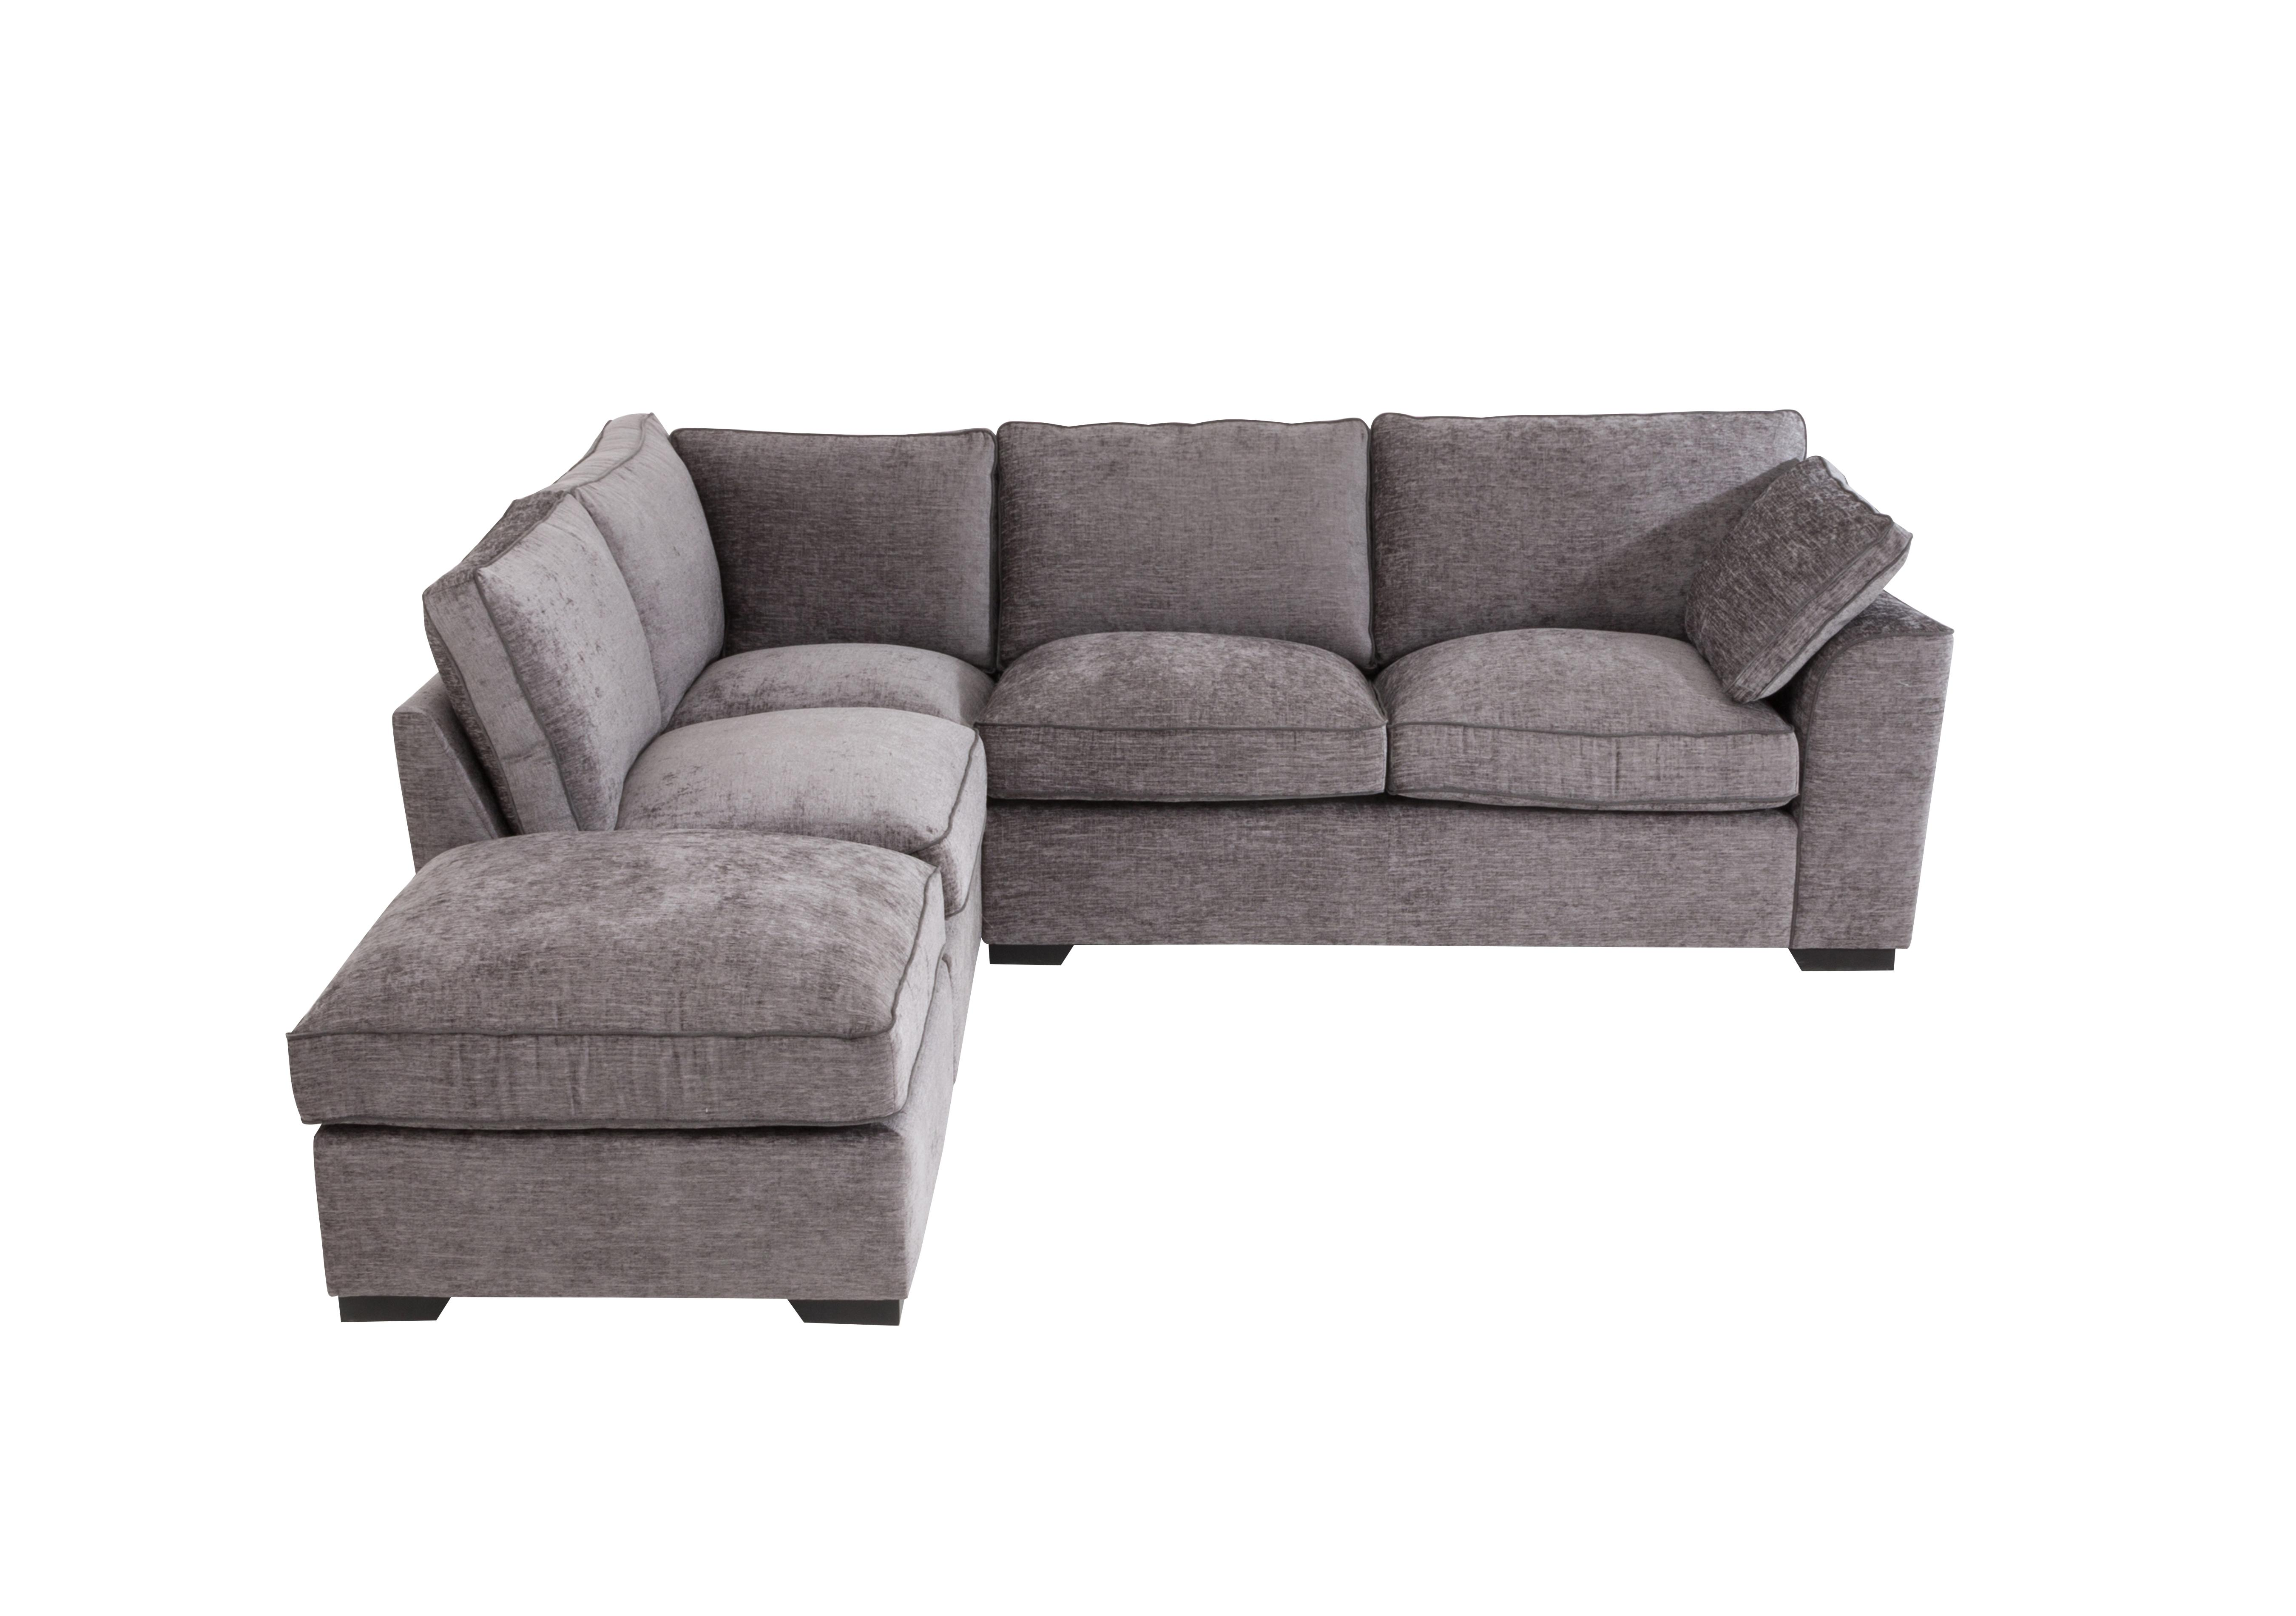 Alexandra Small Corner Sofa with Footstool - Furniture Village